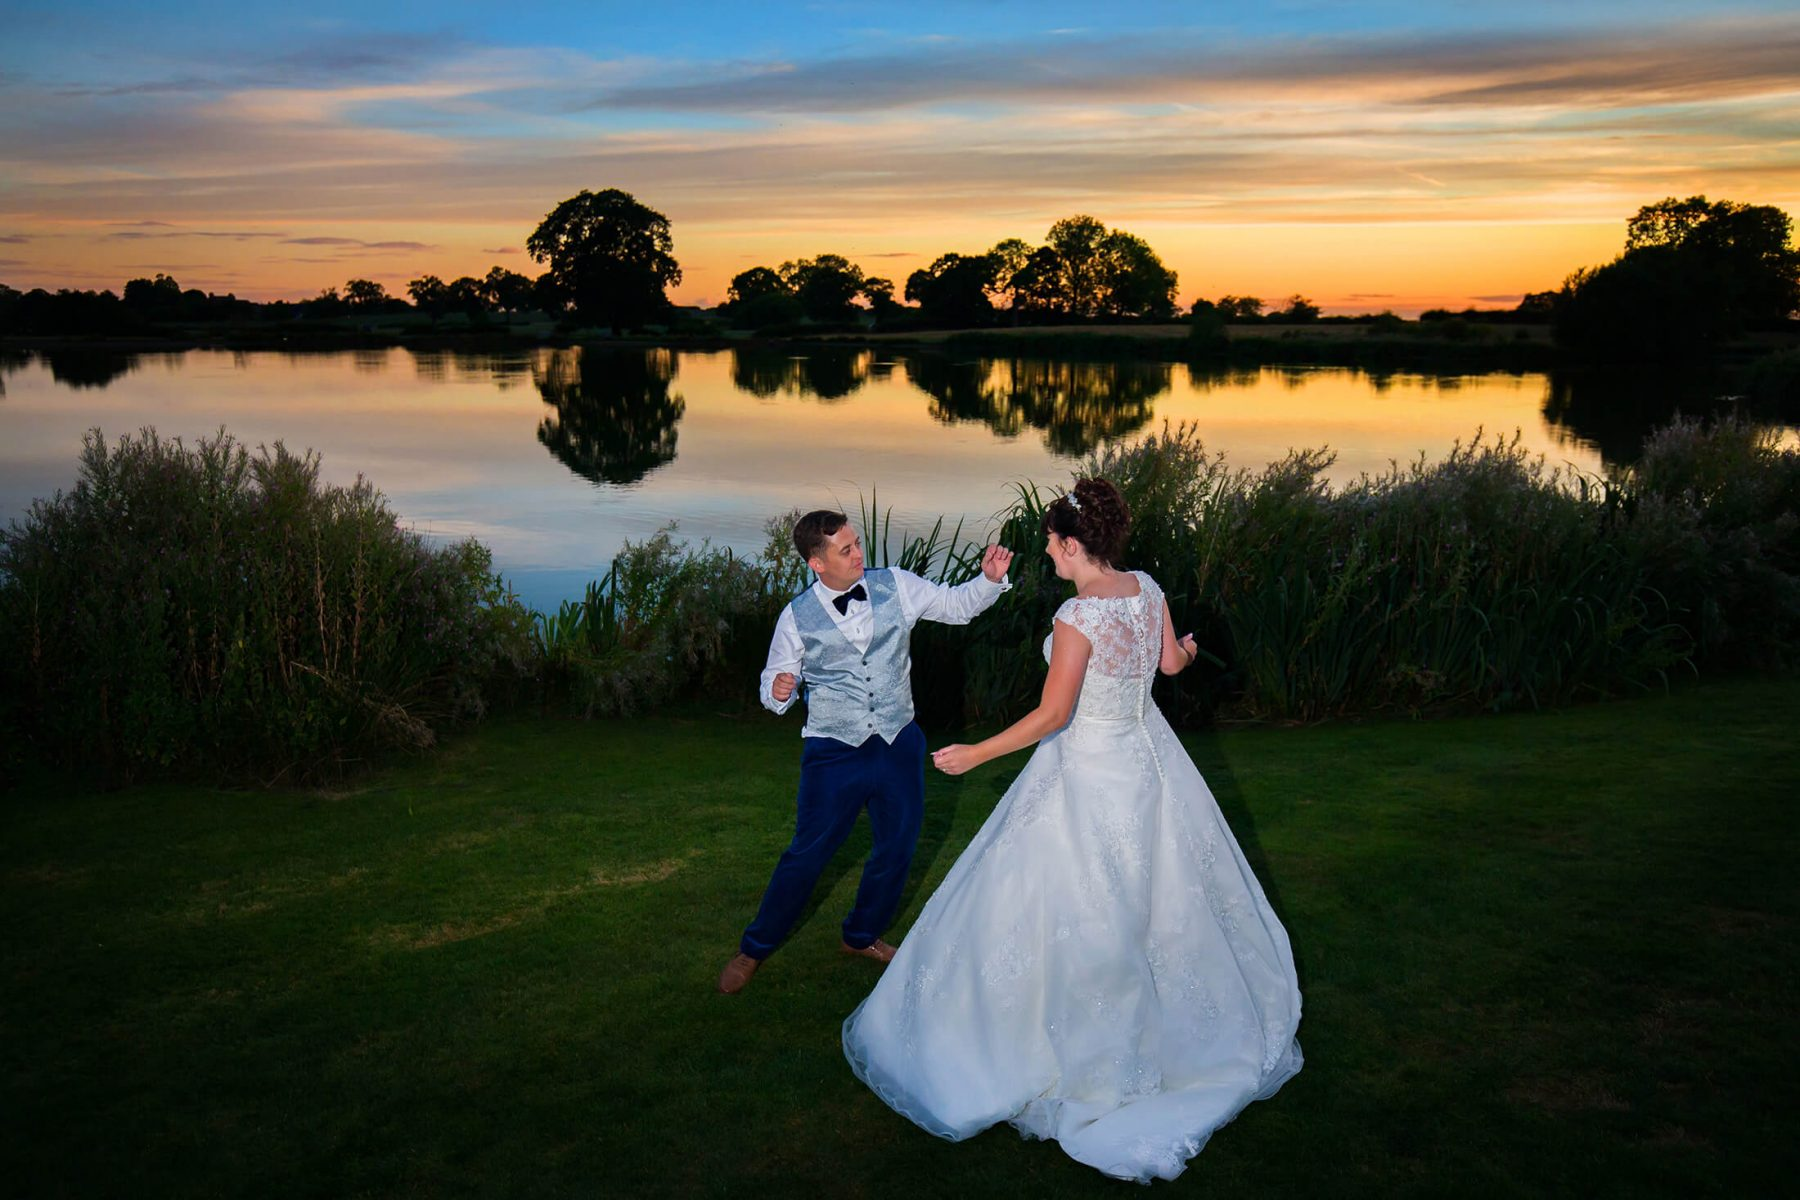 The bride and groom dance in front of the lake and a sunset after their wedding at Sandhole Oak Barn in Cheshire. Sandhole Oak Barn Wedding Photographer